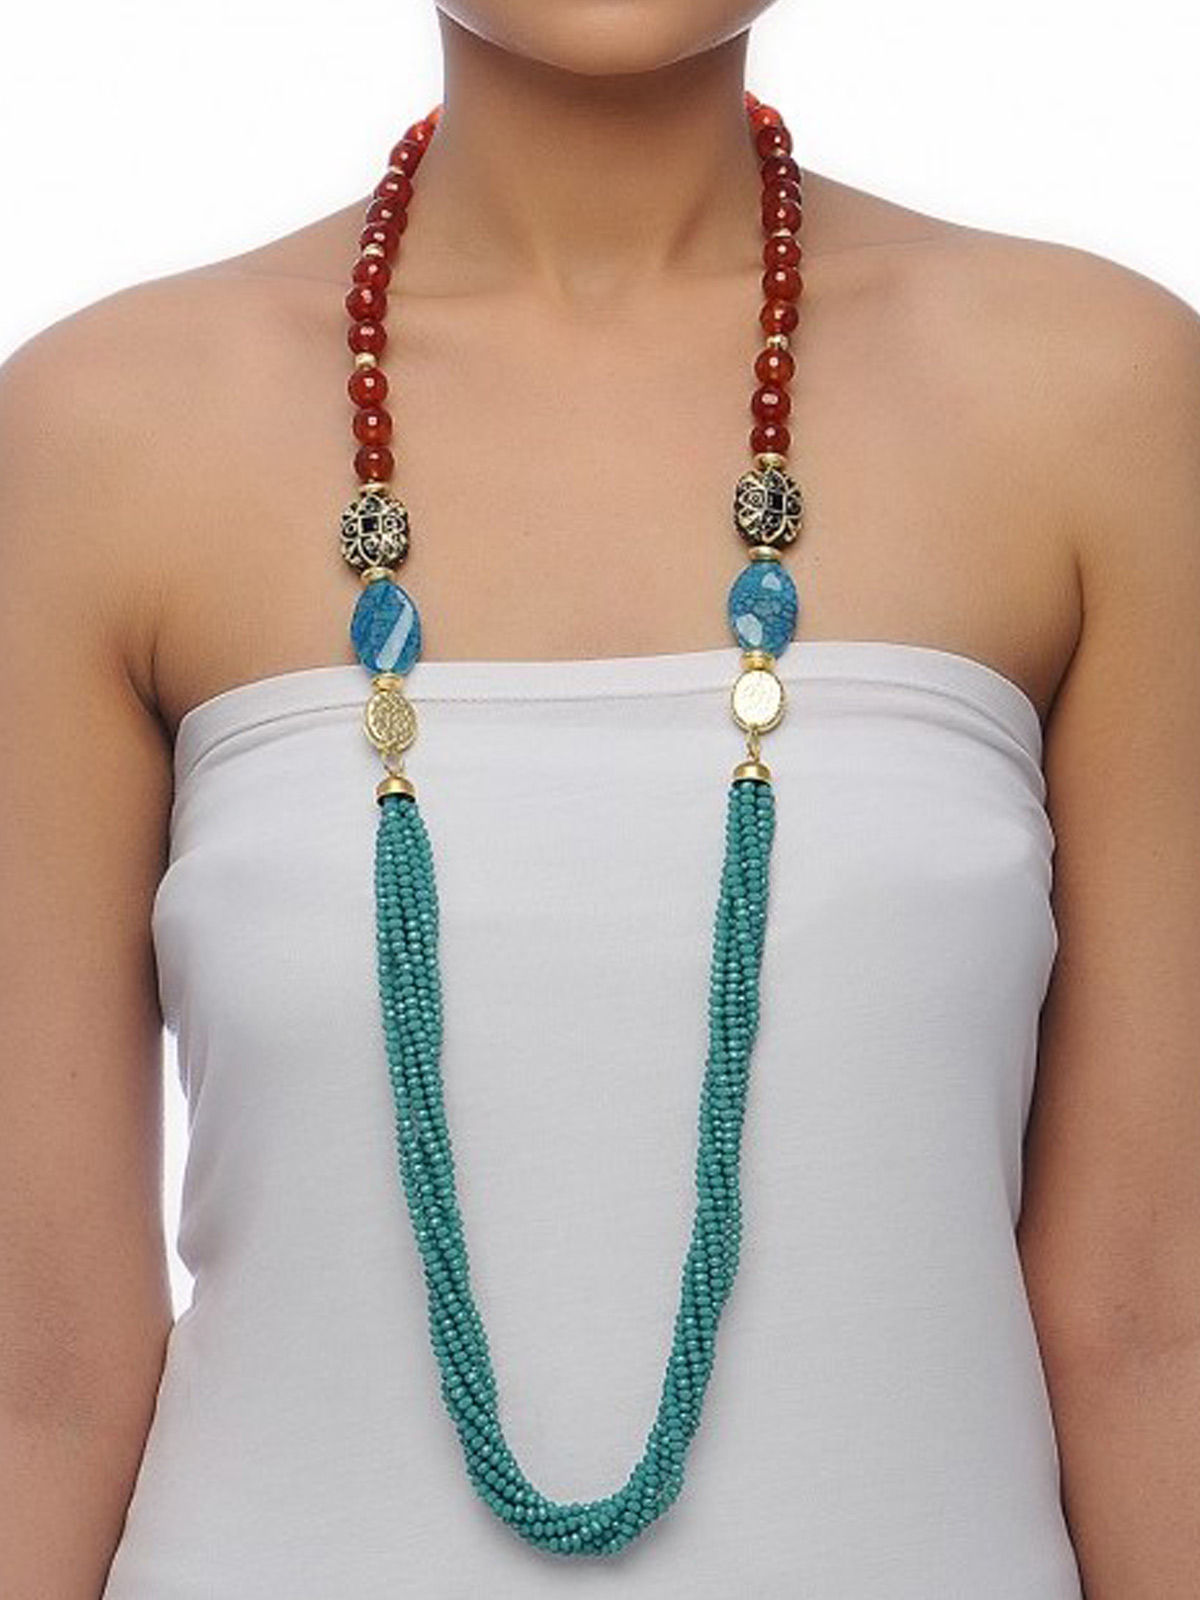 Aj Creations Rust-turquoise necklace